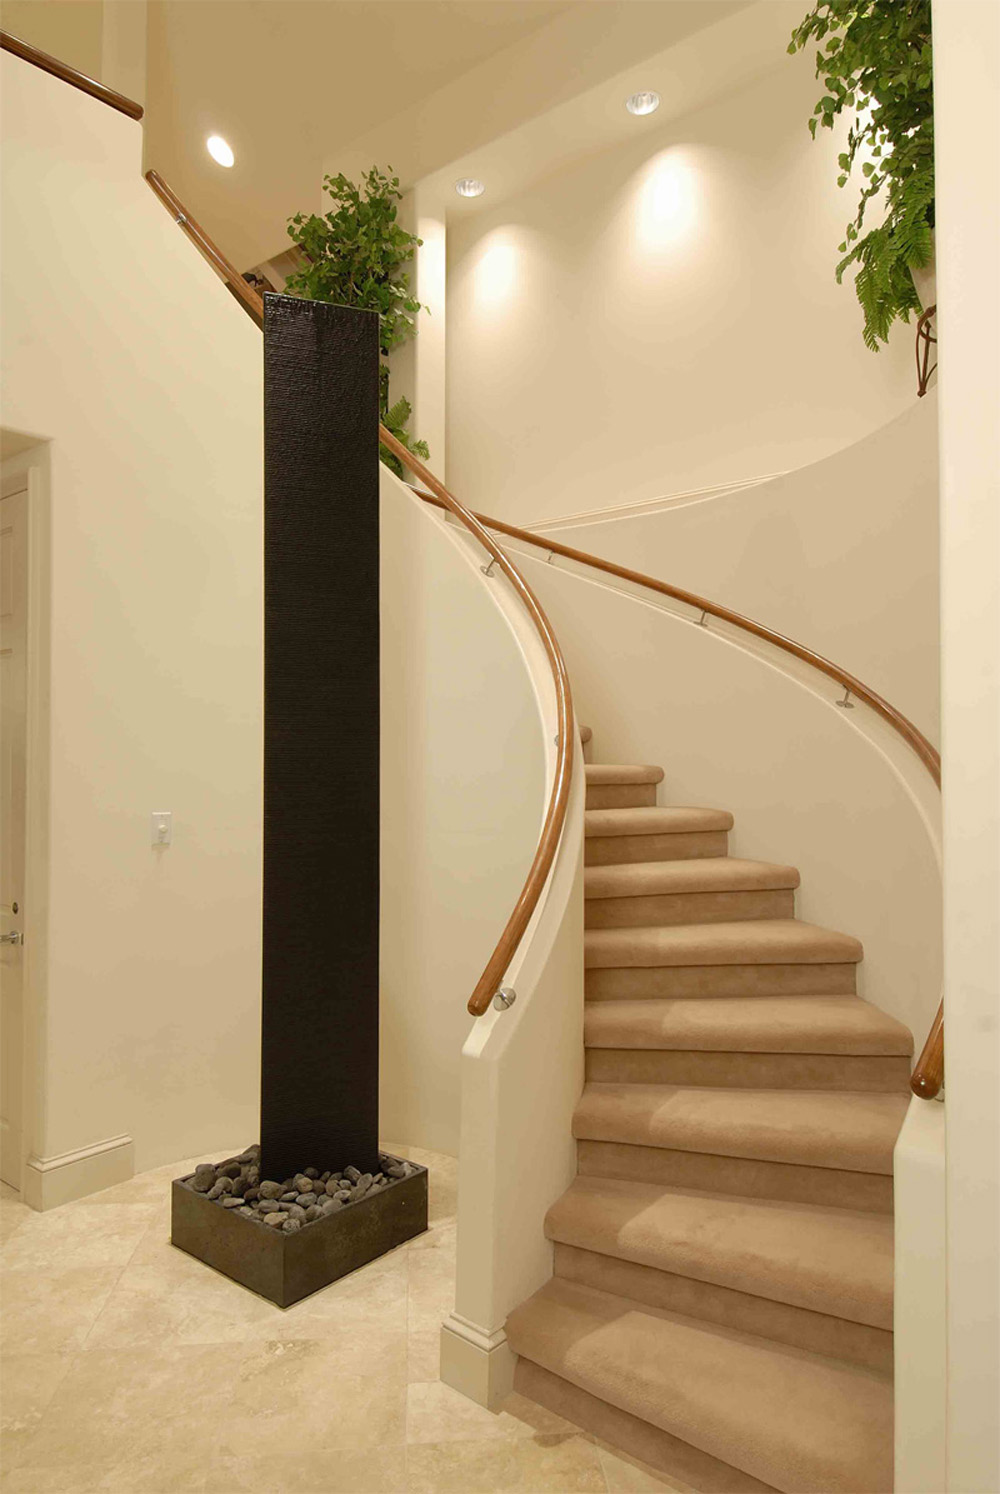 Beautiful staircase design gallery 10 photos modern - Stairs design inside house ...